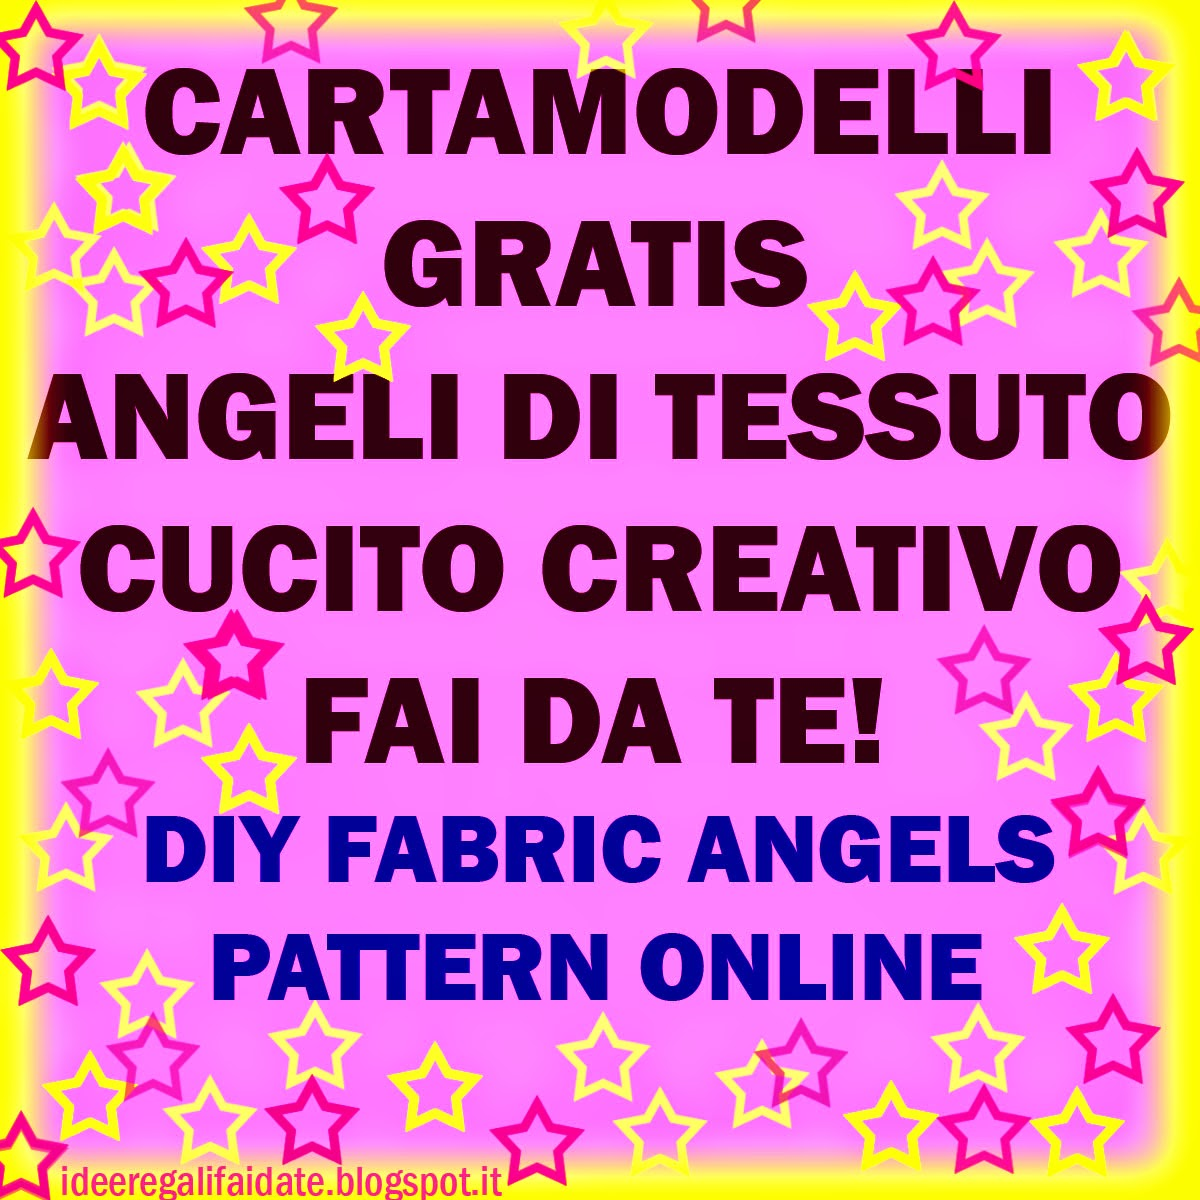 Top Diy Home Decor Blogs Cartamodelli Angeli Gratis On Line Free Fabric Angel